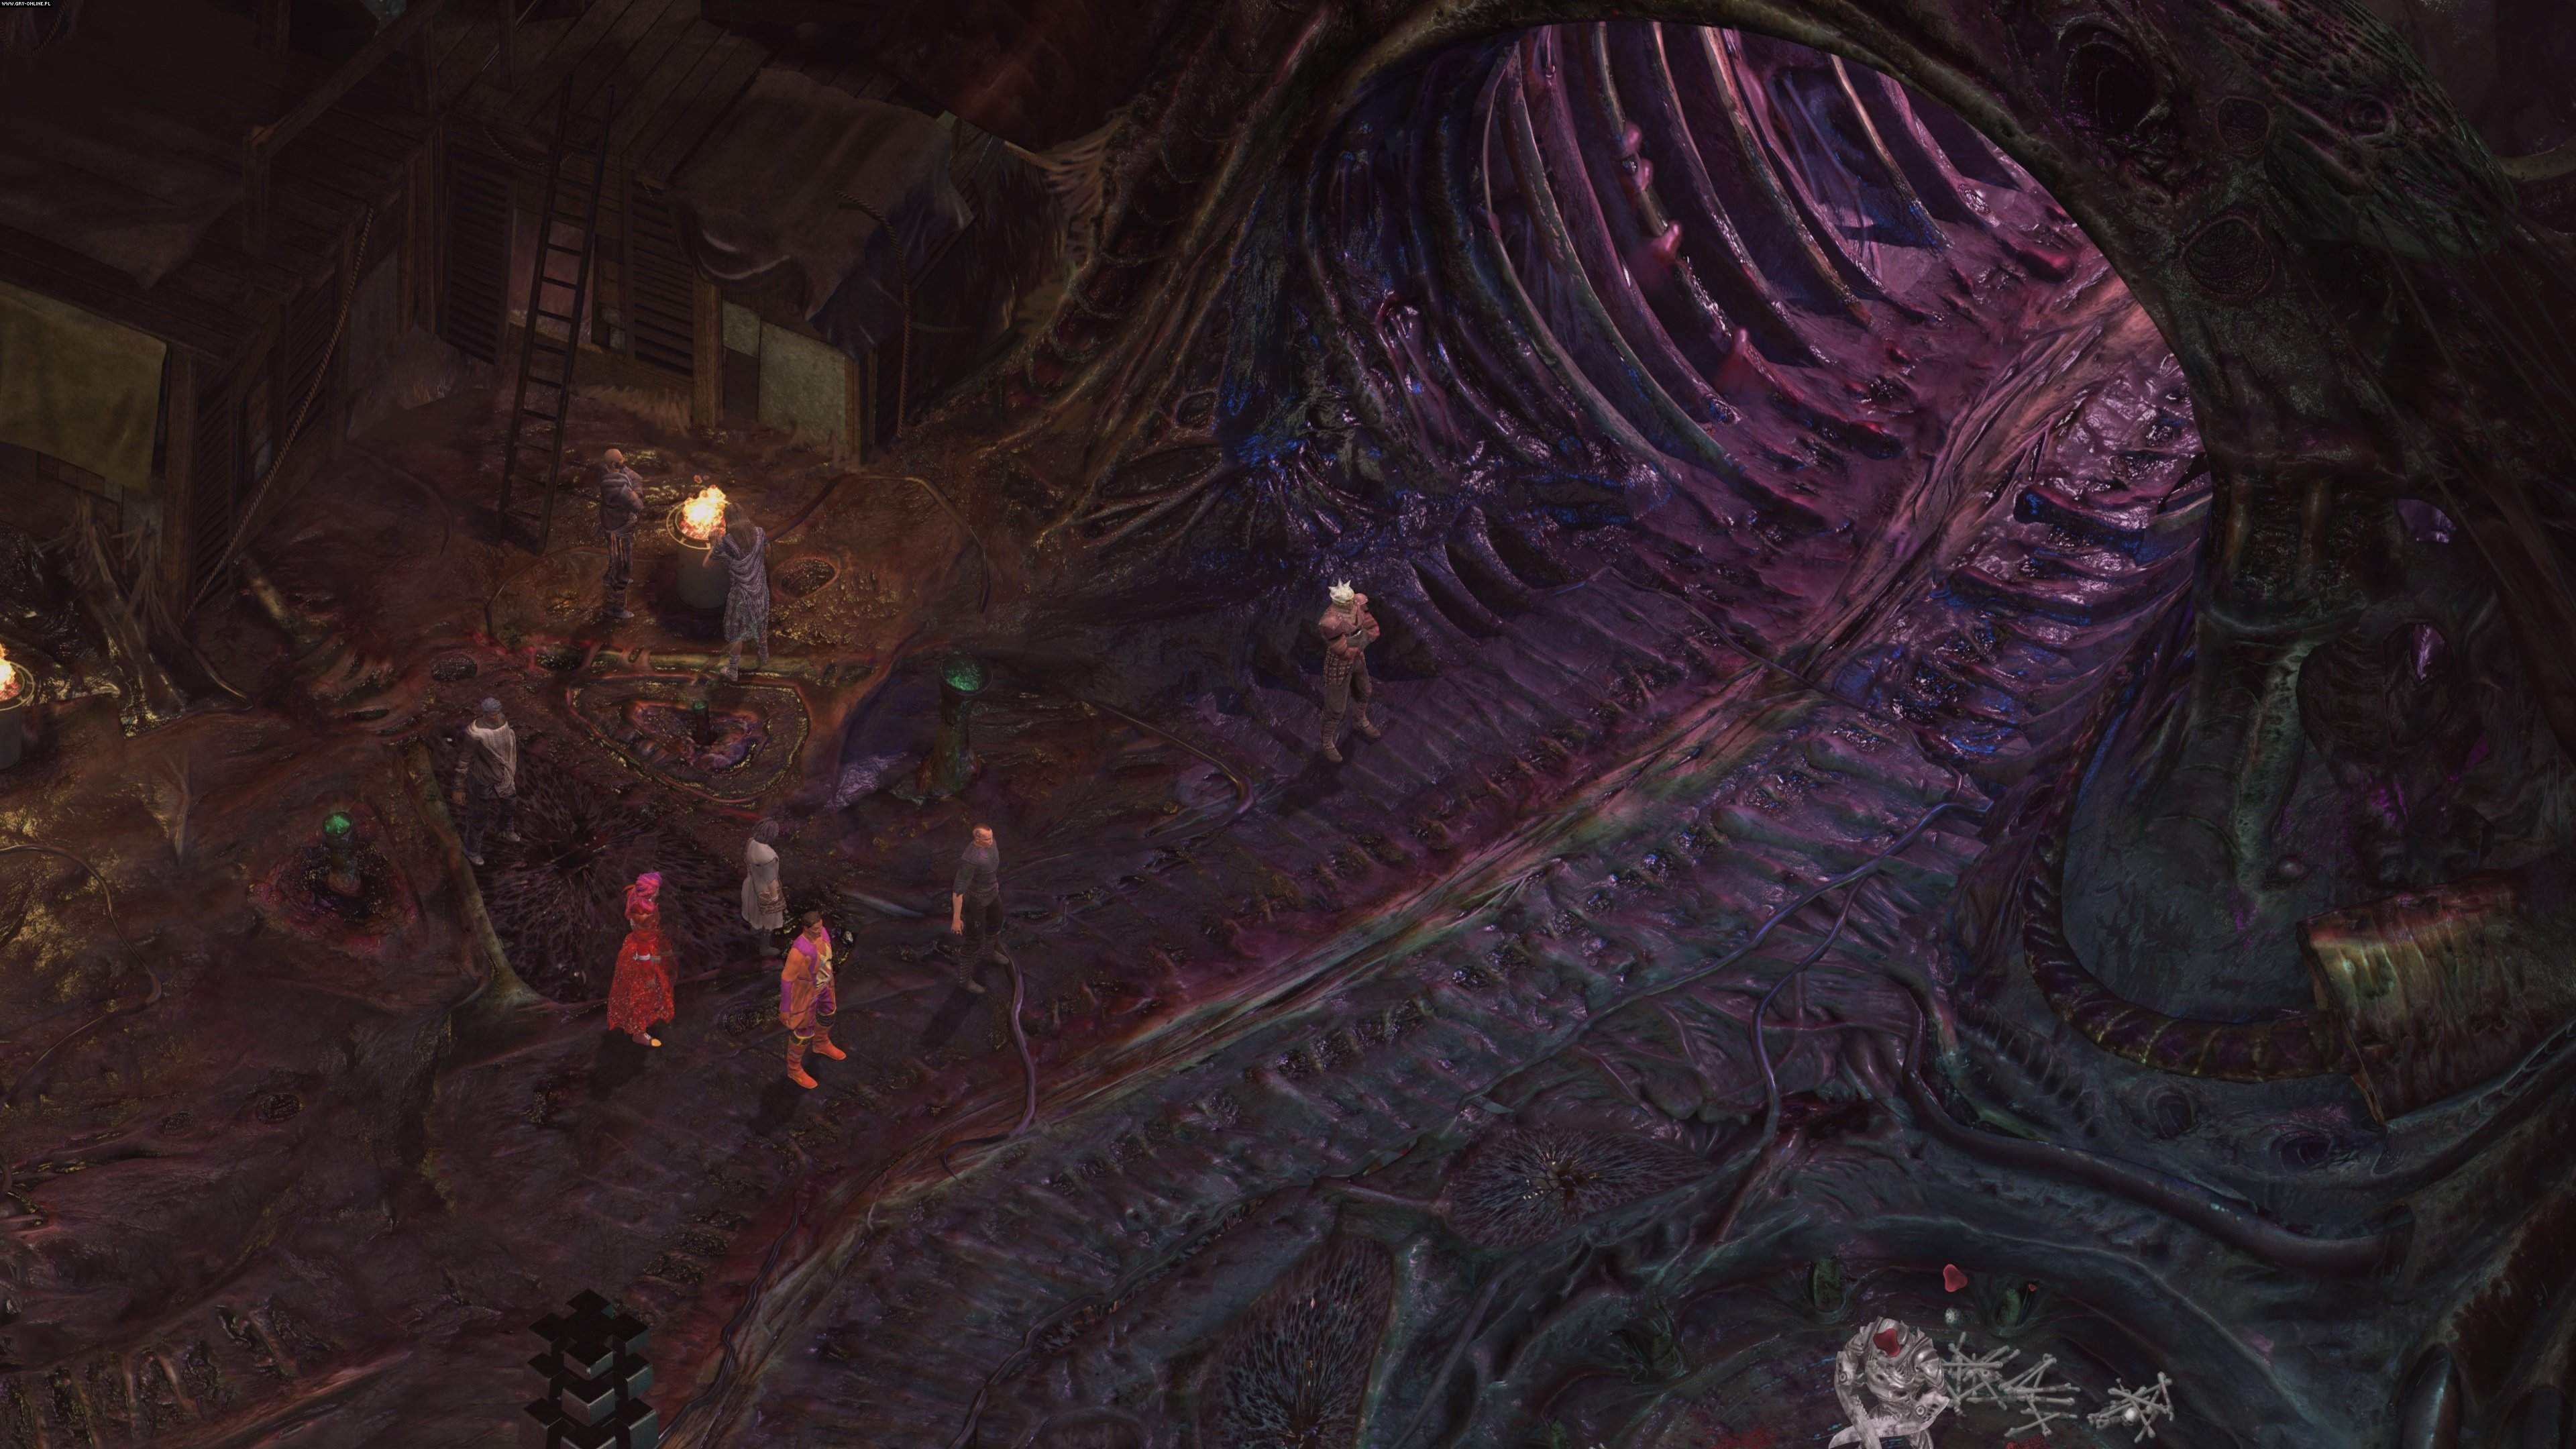 Torment: Tides of Numenera PC Games Image 7/28, inXile entertainment, Techland